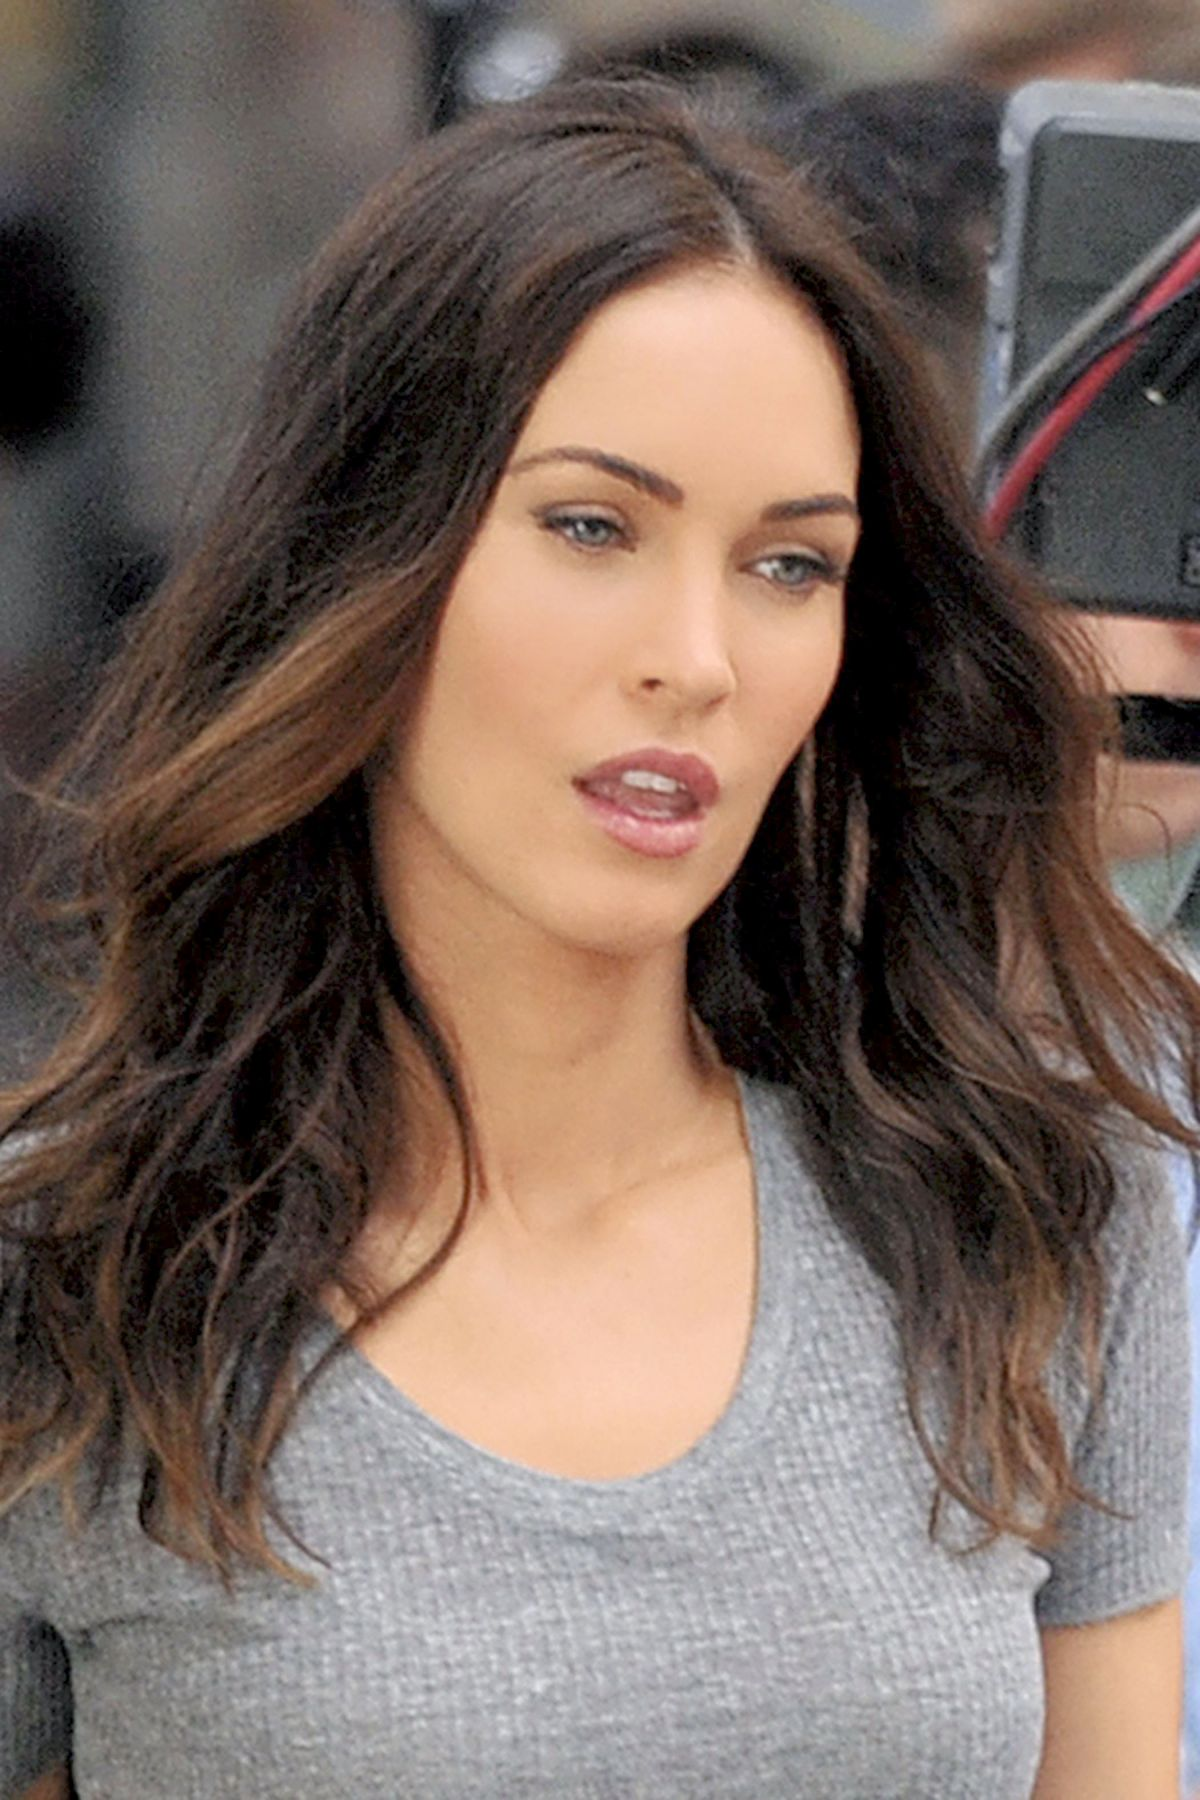 MEGAN FOX on the Set of Teenage Mutant Ninja Turtles 2 05/11/2015 Megan Fox